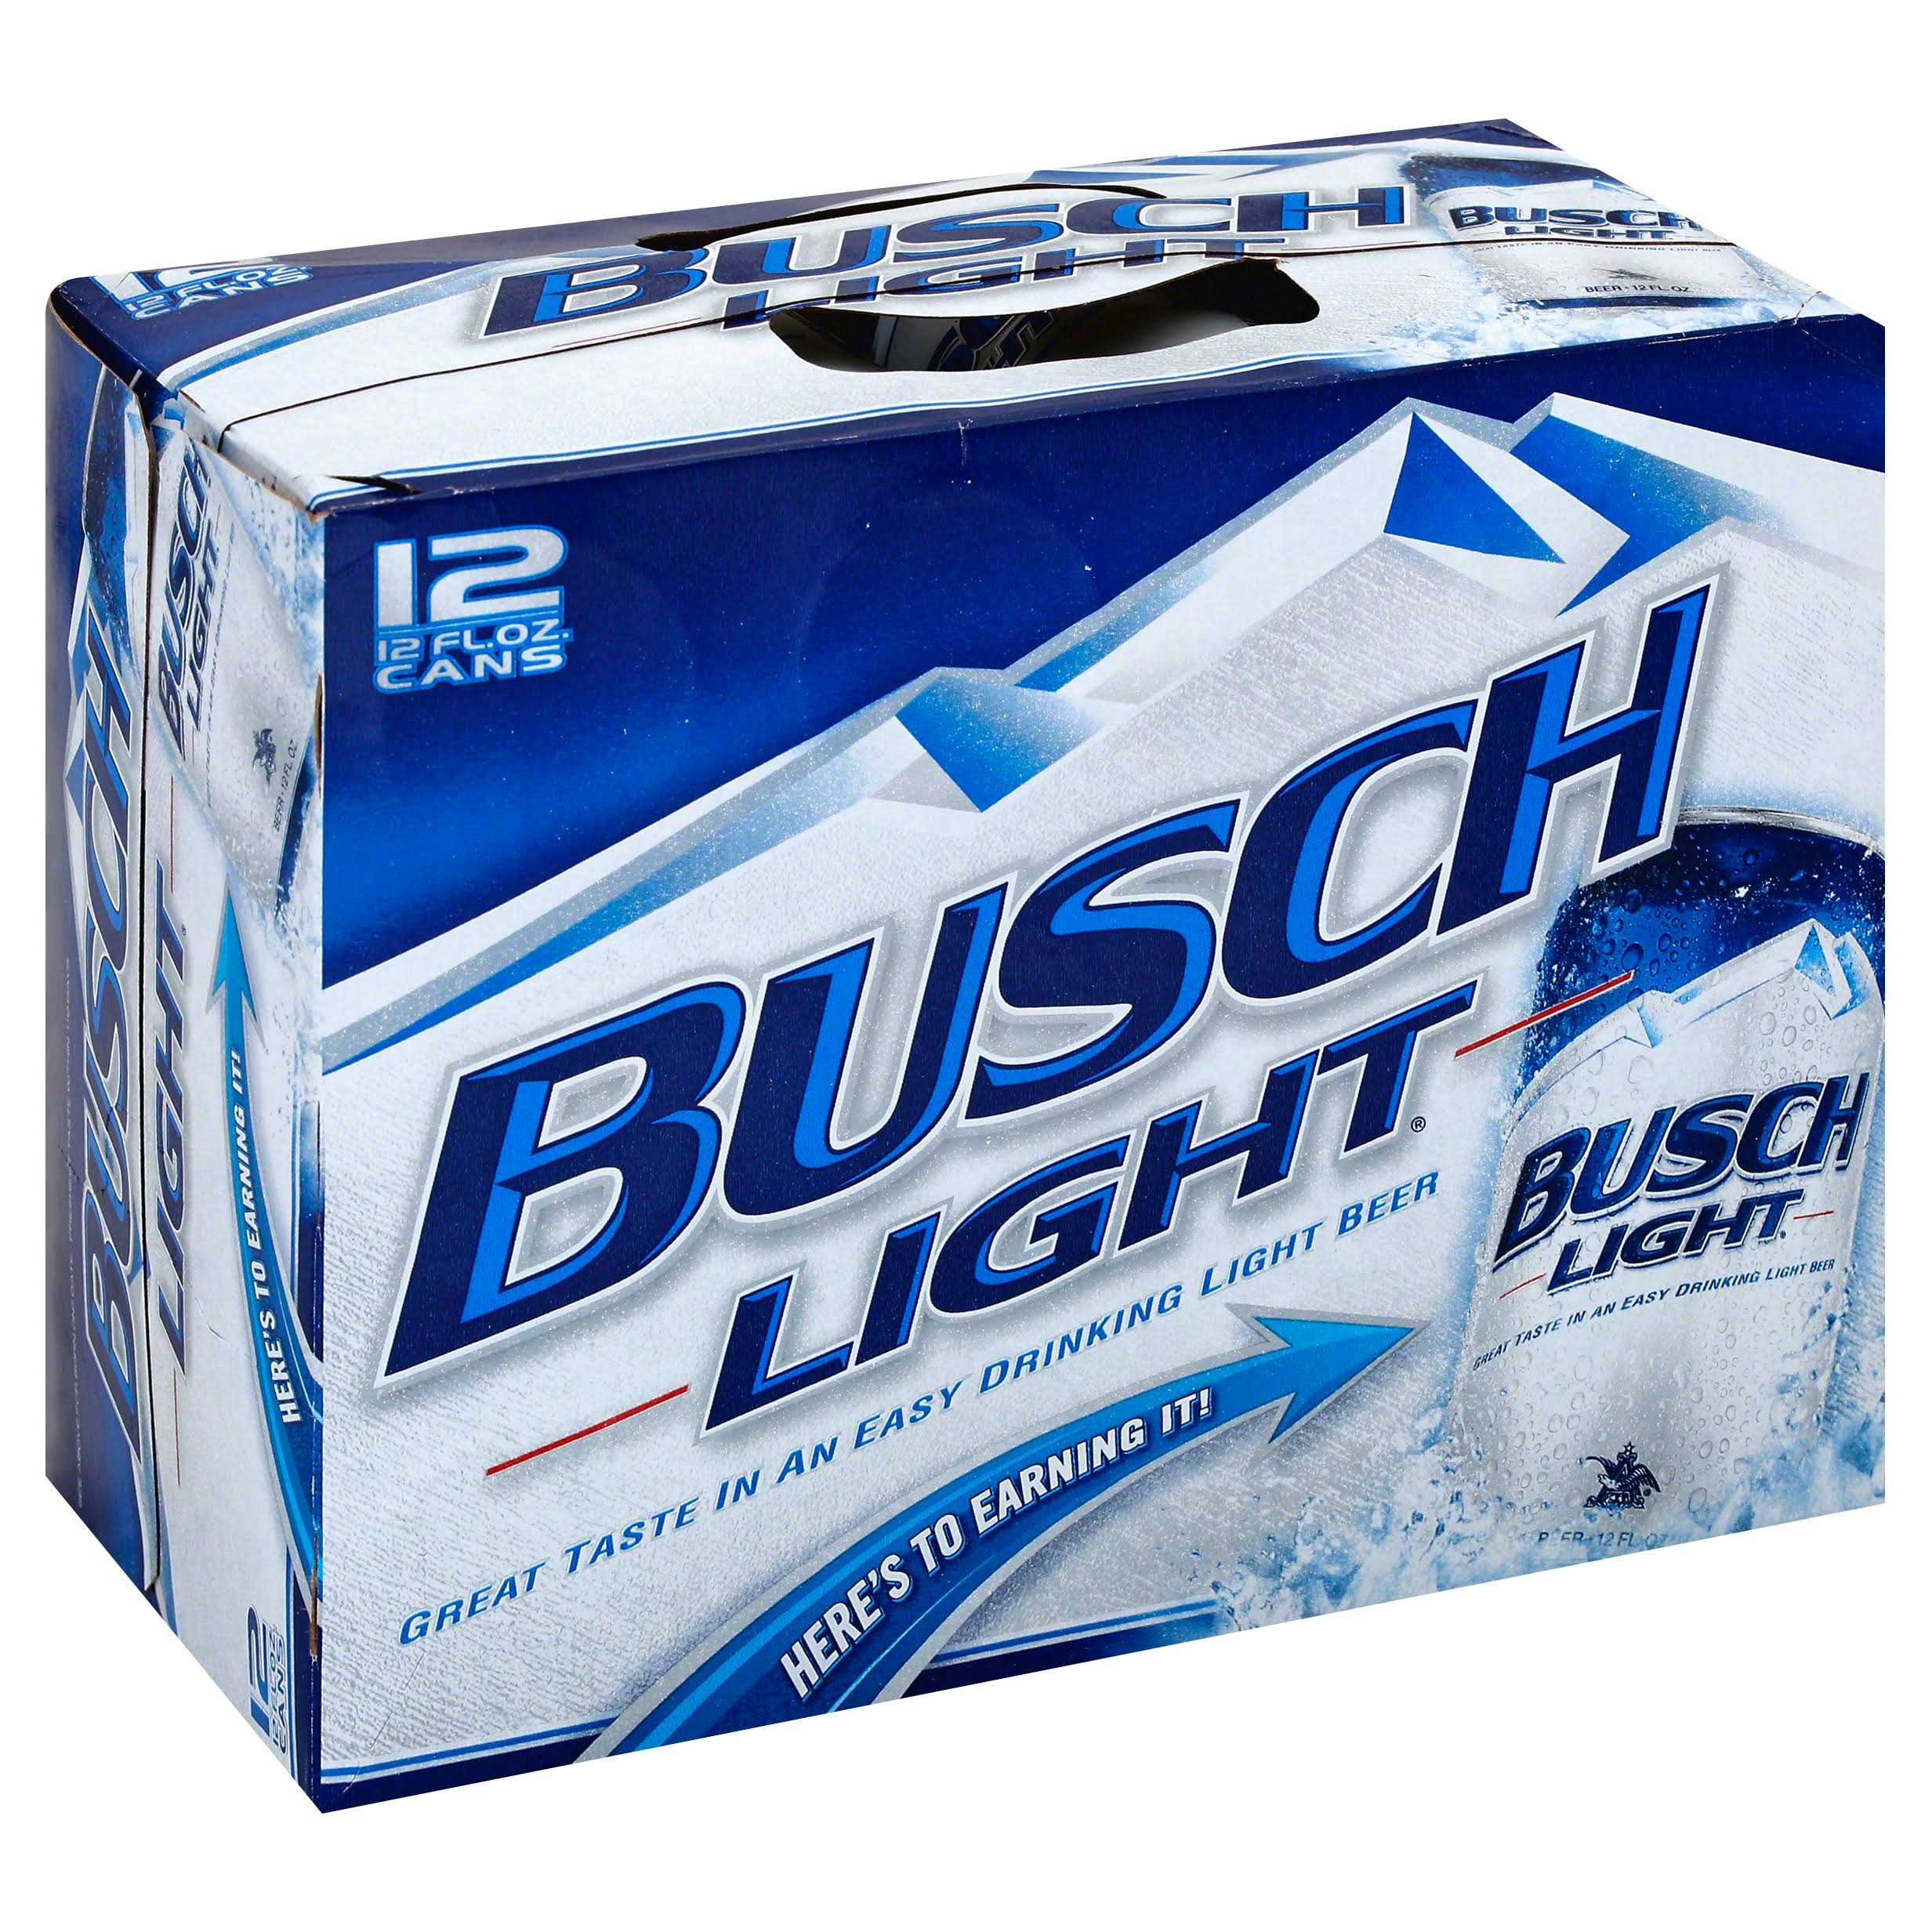 Busch Light Beer - 12 Cans